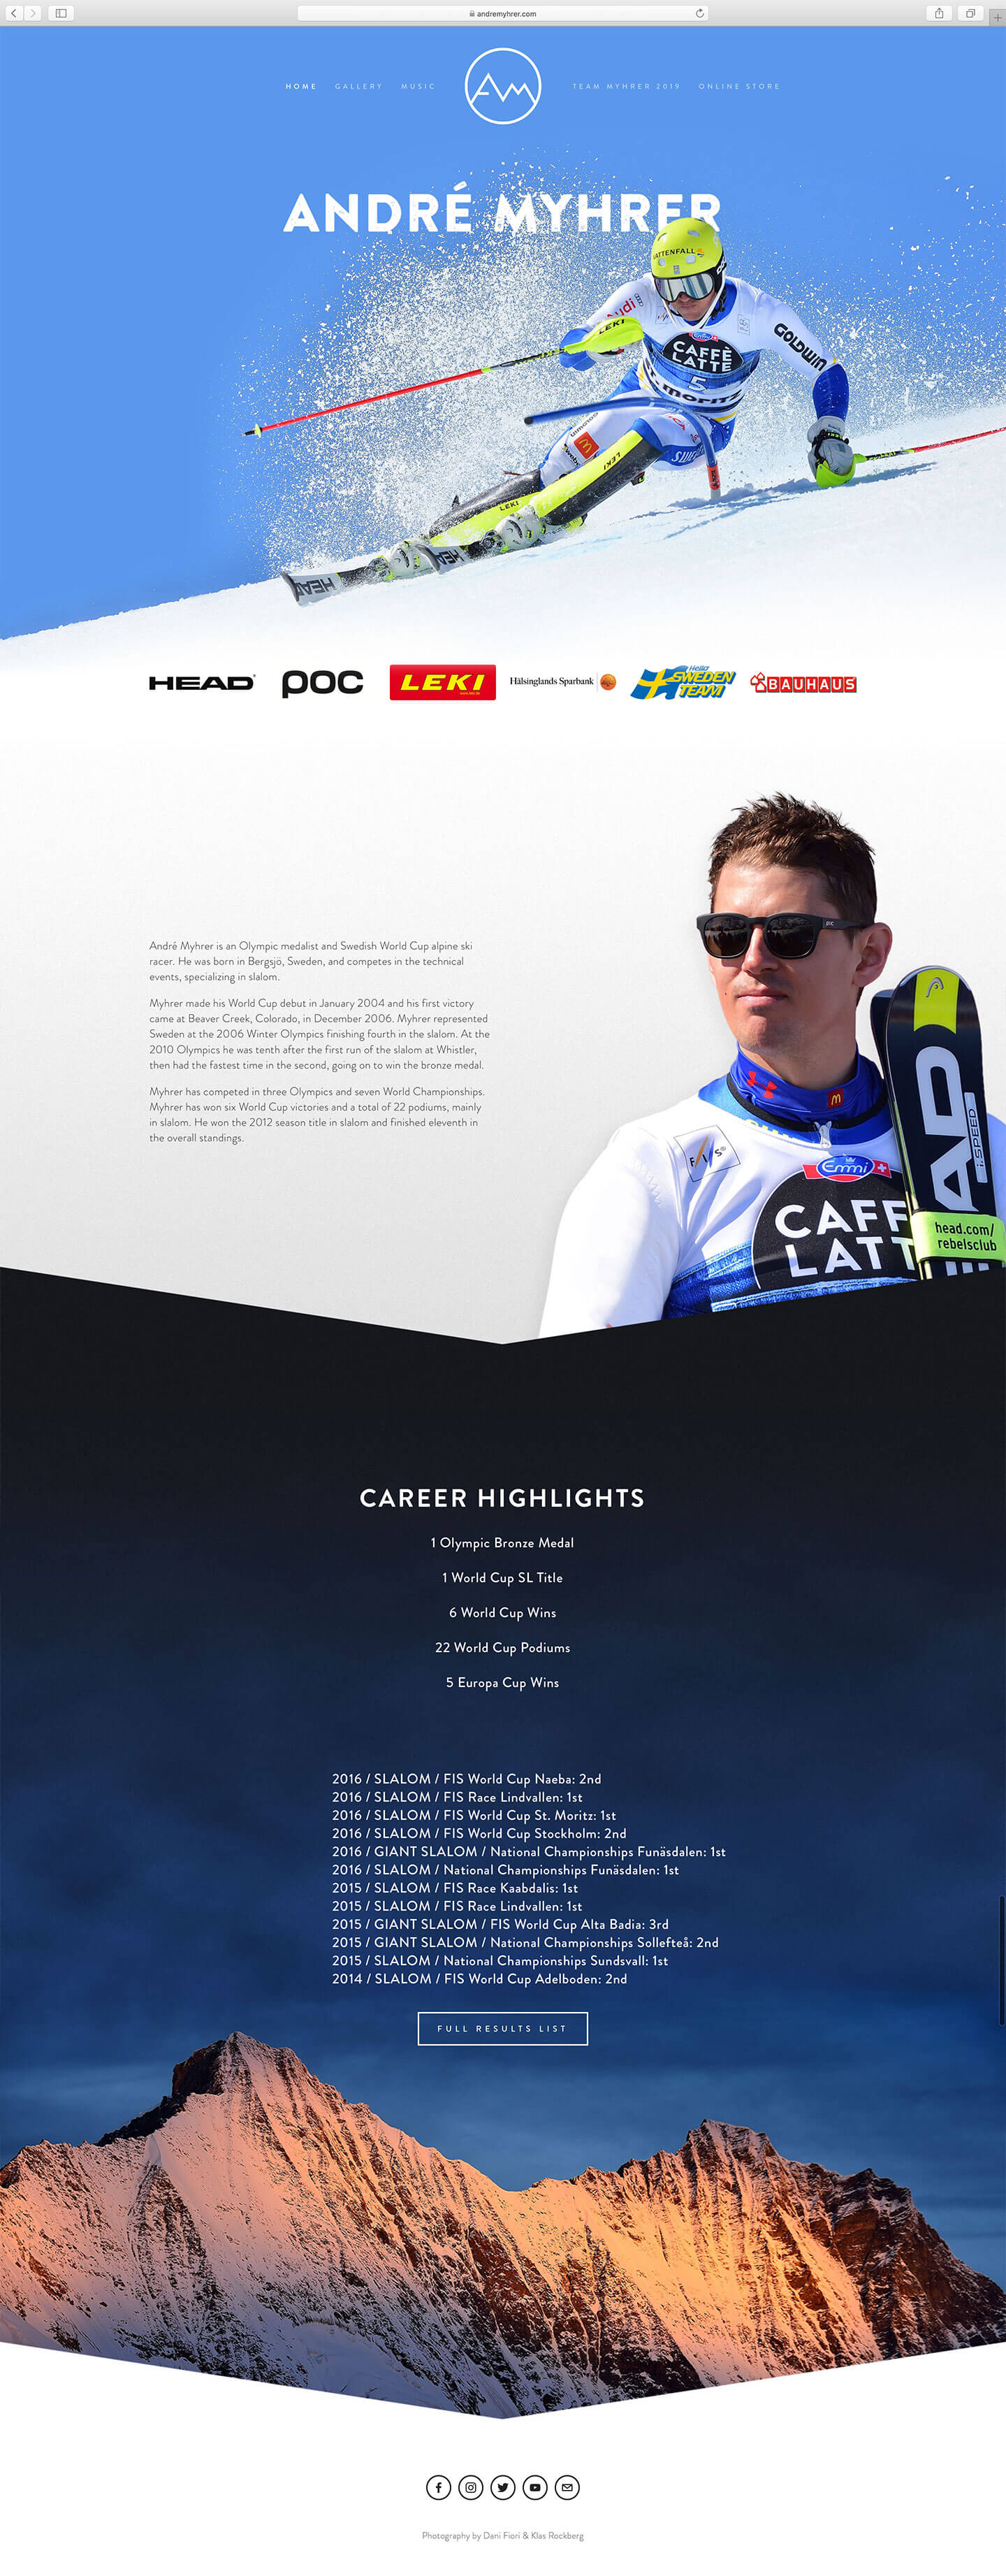 andre myhrer landing page